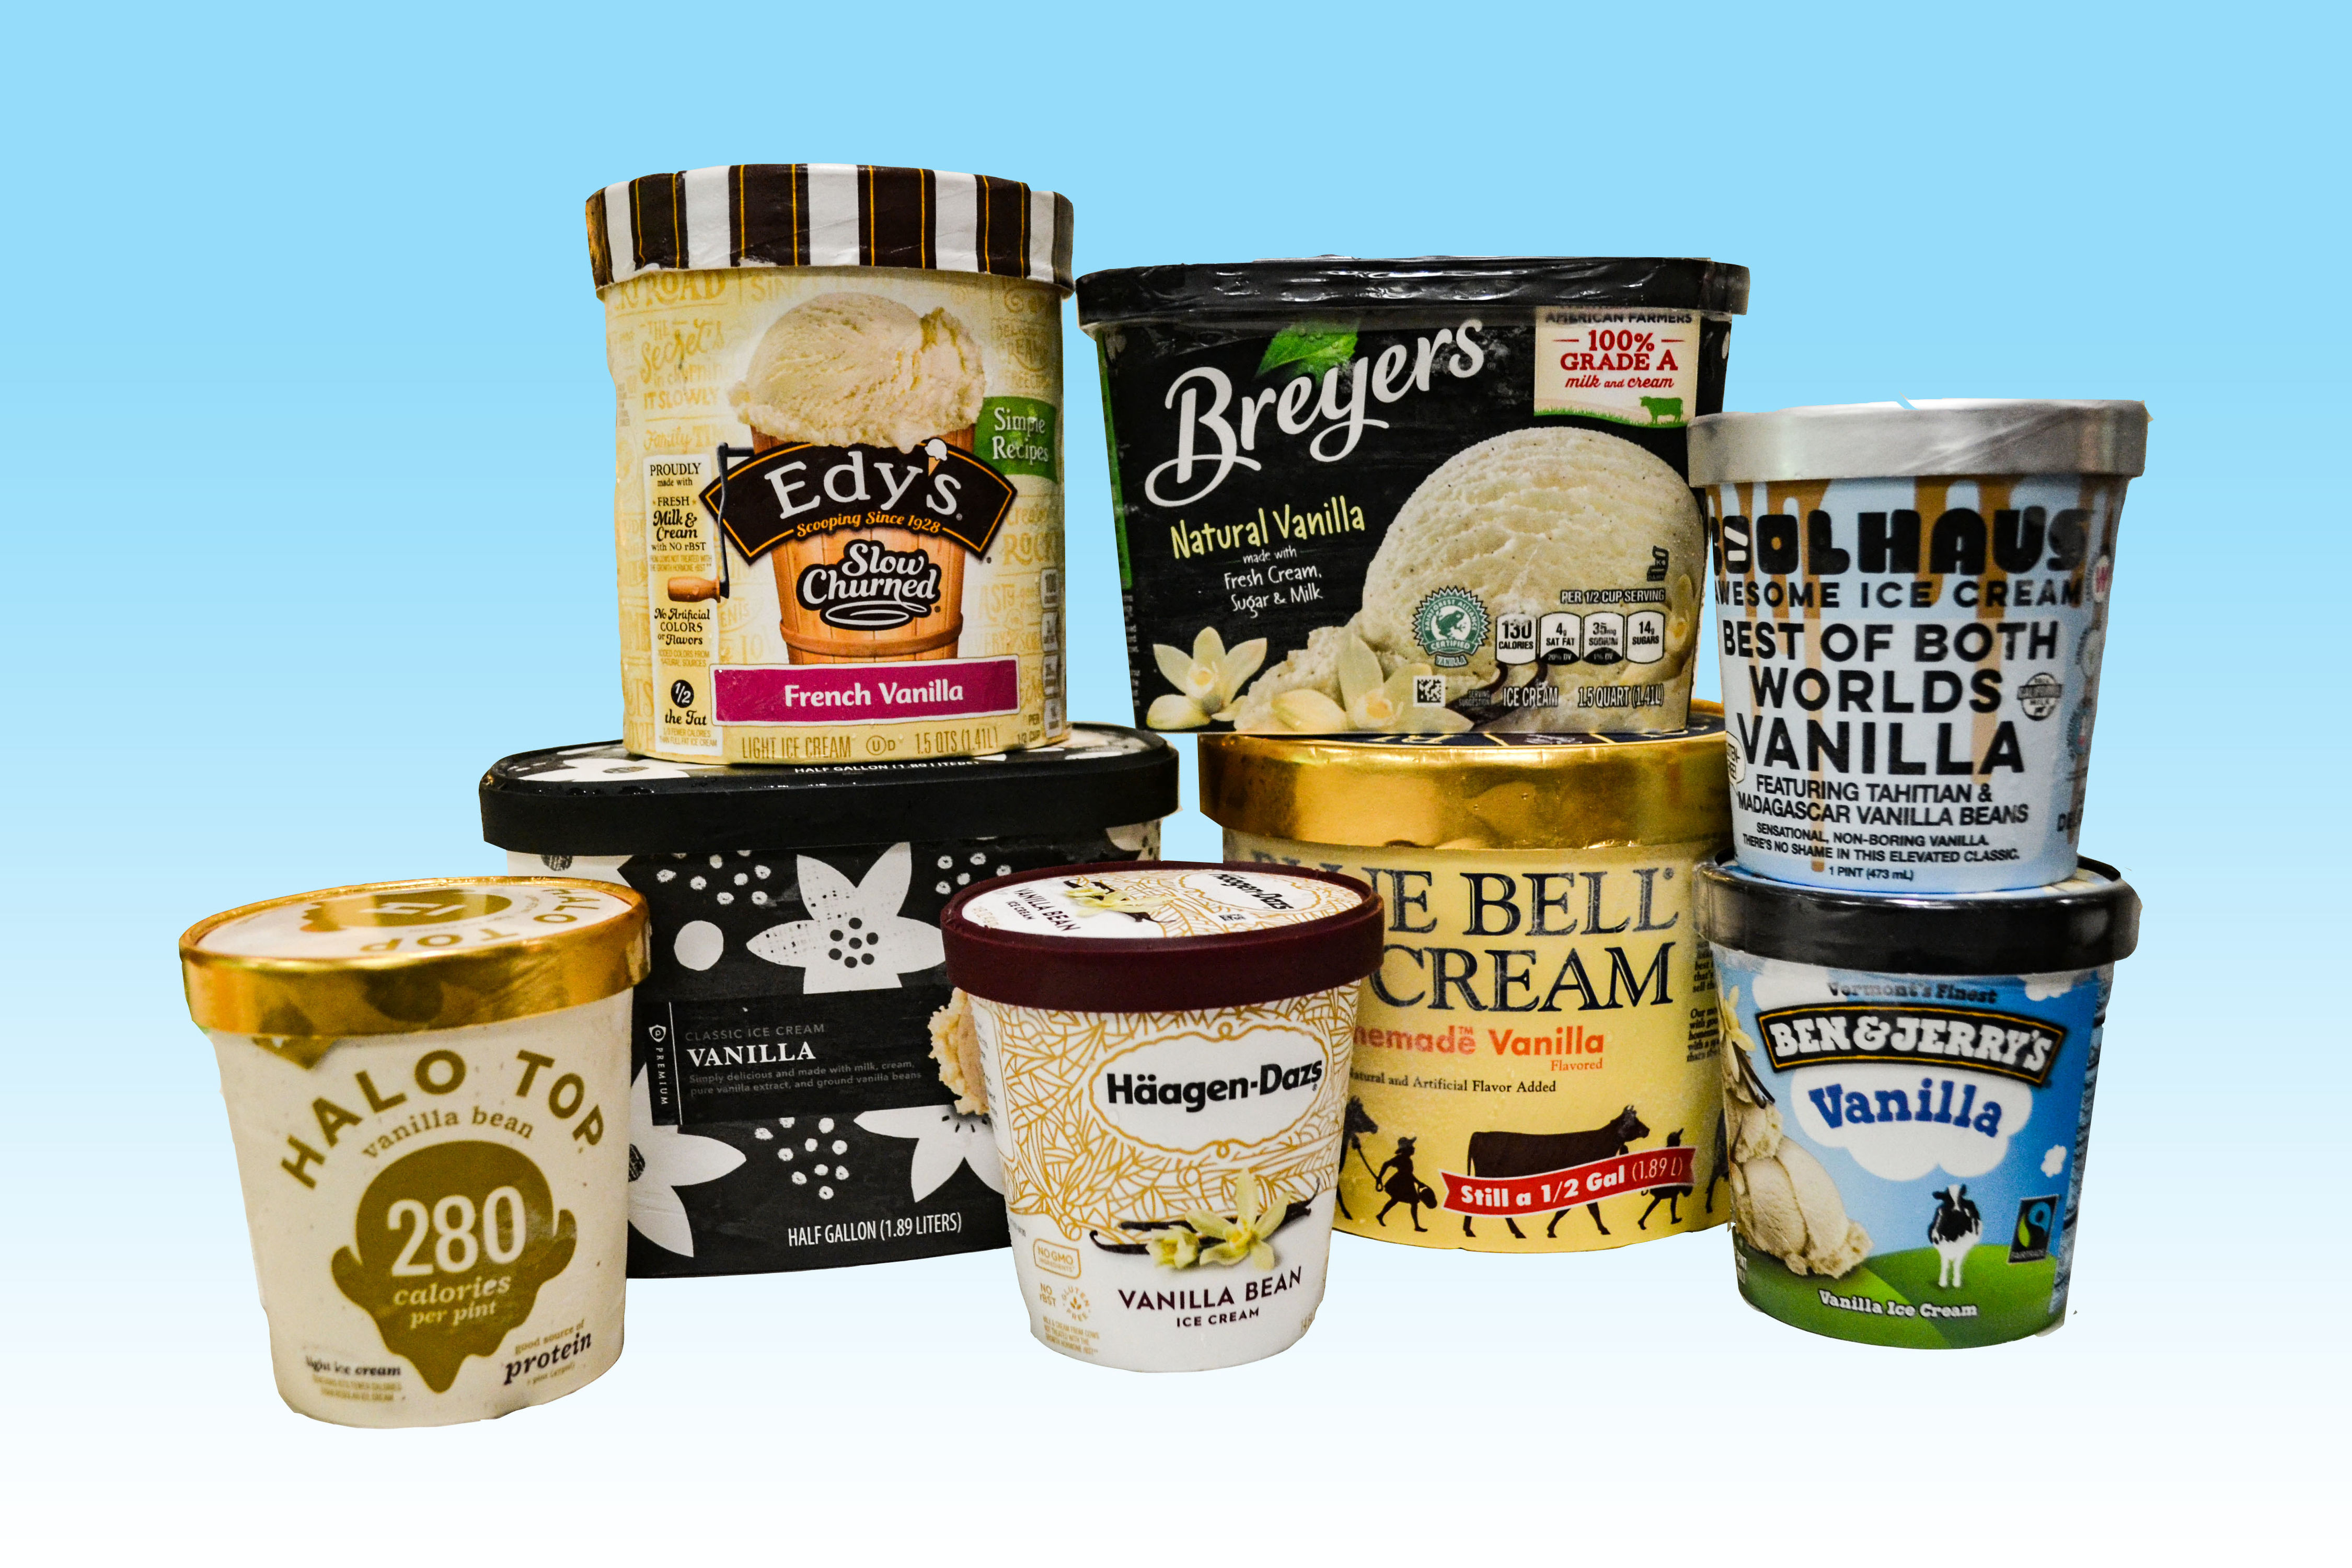 We Tasted 8 Vanilla Ice Creams, and These Are Our Favorites